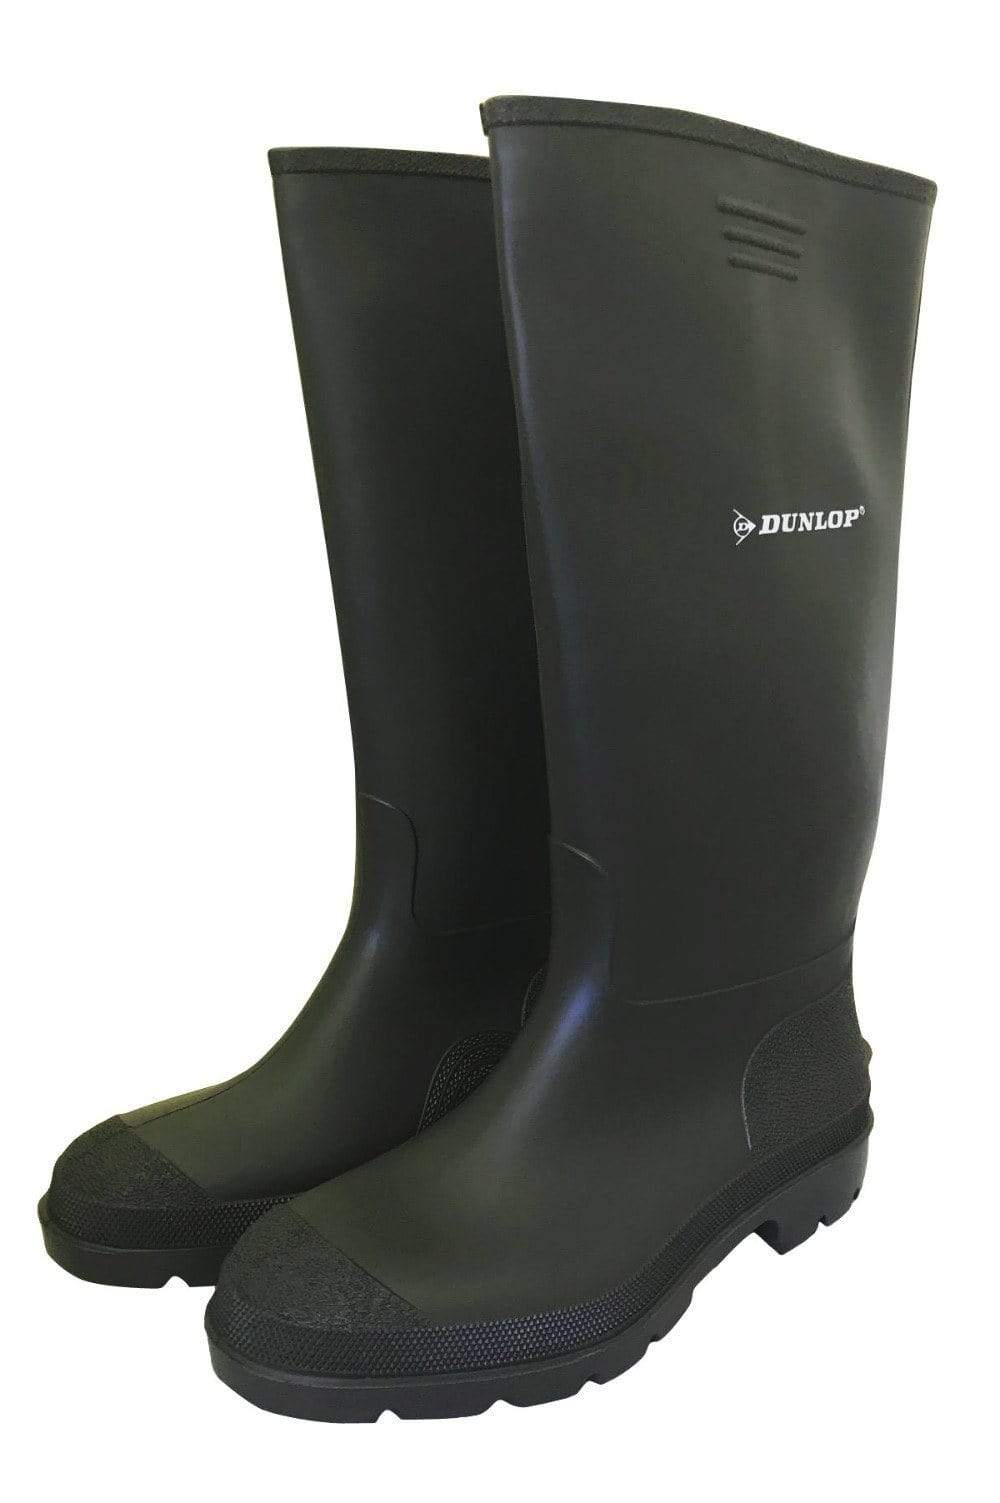 Budget Master Black Wellies by Dunlop - Wide Calf Wellies for Women